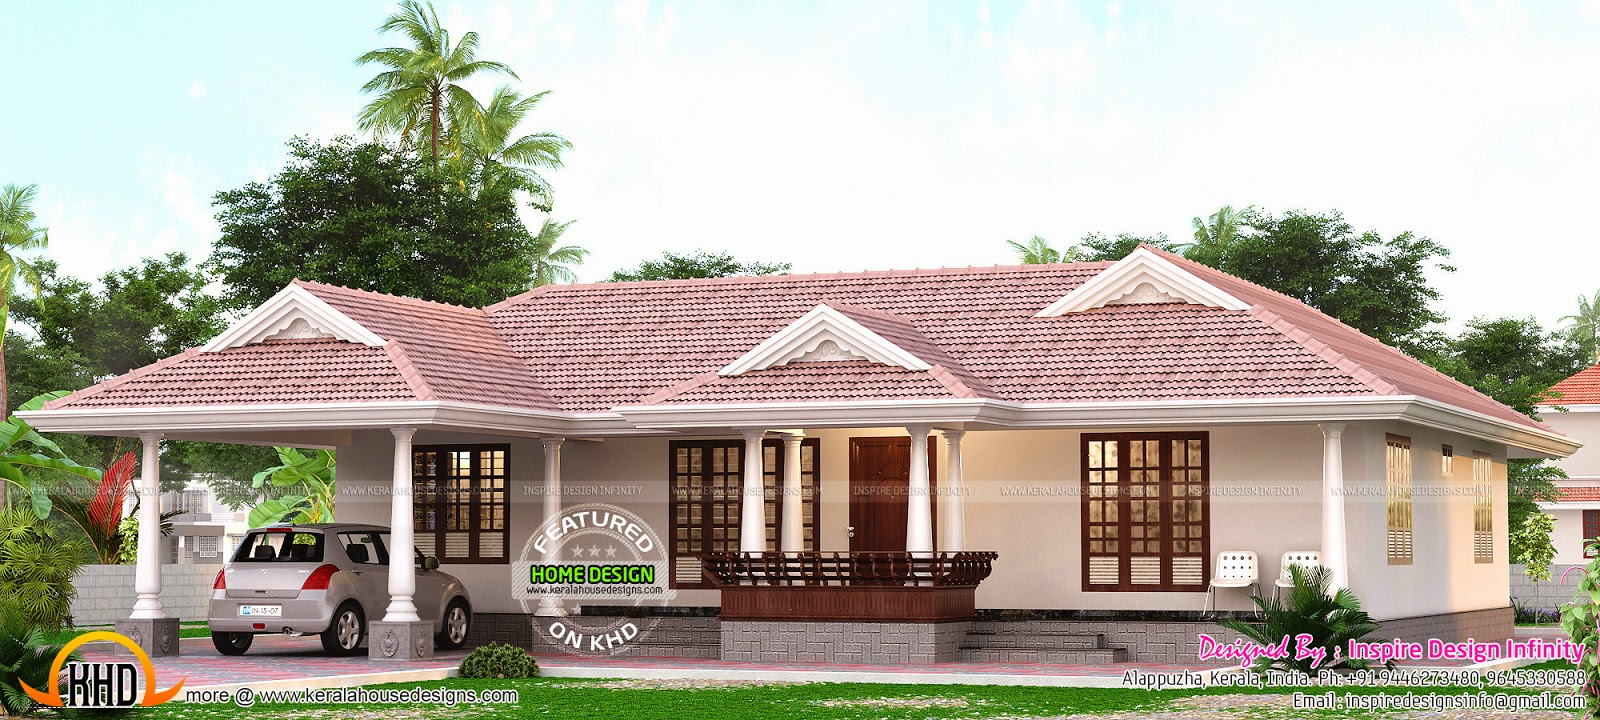 Kerala model single storied home kerala home design and for Kerala traditional home plans